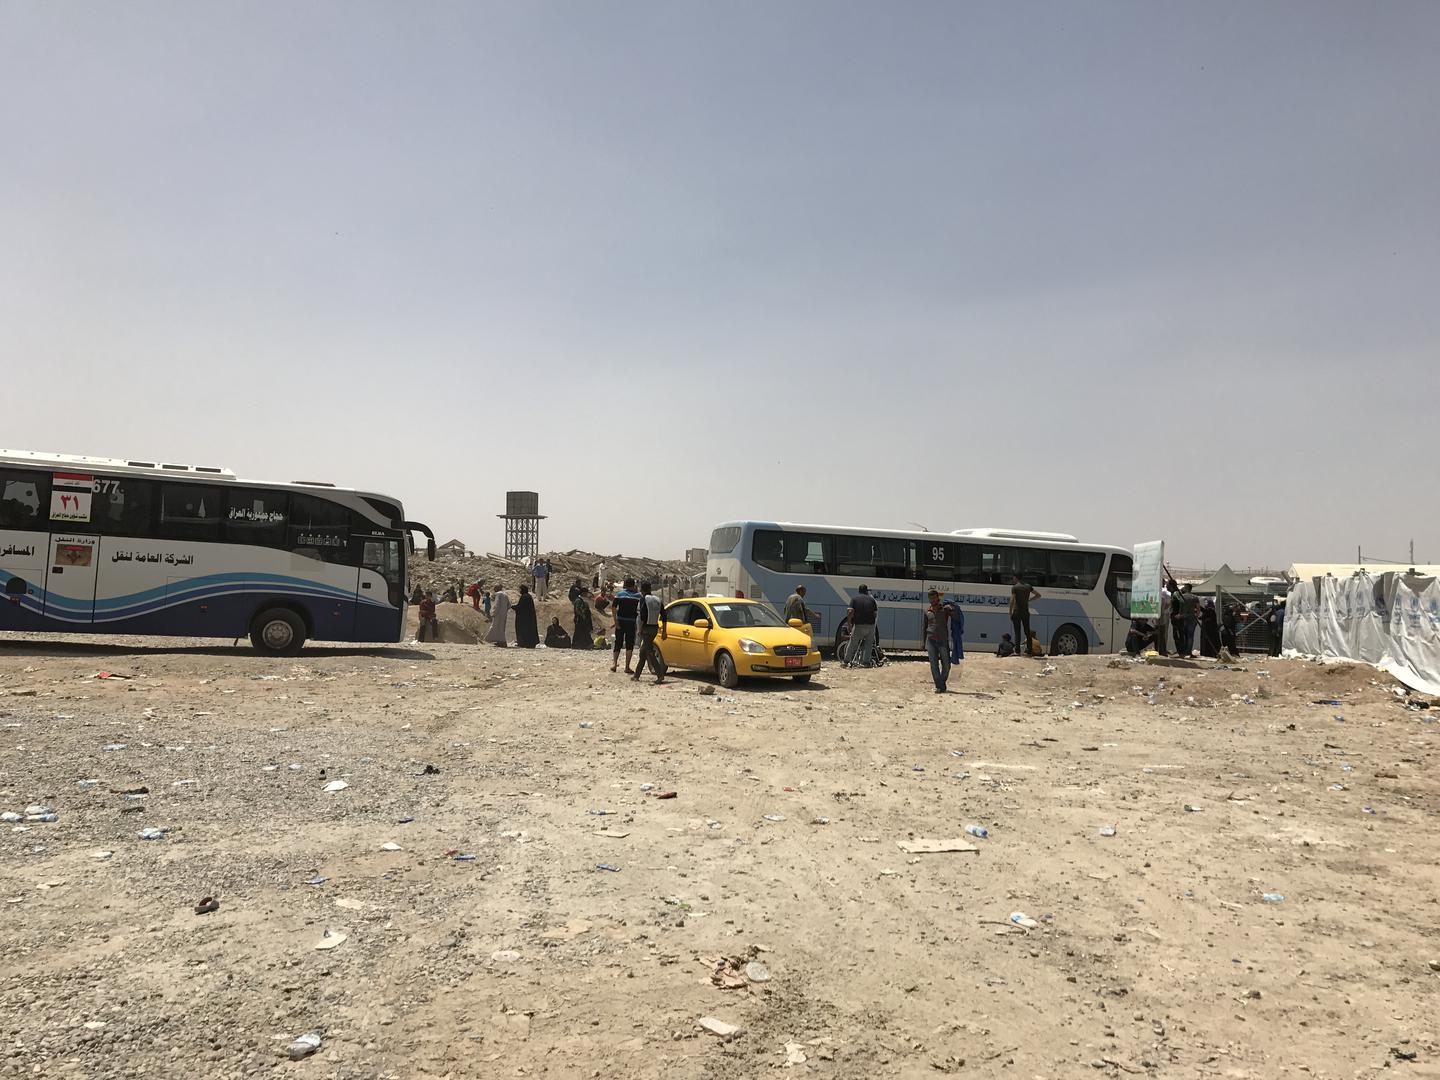 Iraqi Ministry of Transportation buses taking internally displaced families to Hammam al-Alil in May 2017. In late August, Iraqi authorities bused 1,400 foreign women and children to the site. © 2017 Belkis Wille/Human Rights Watch